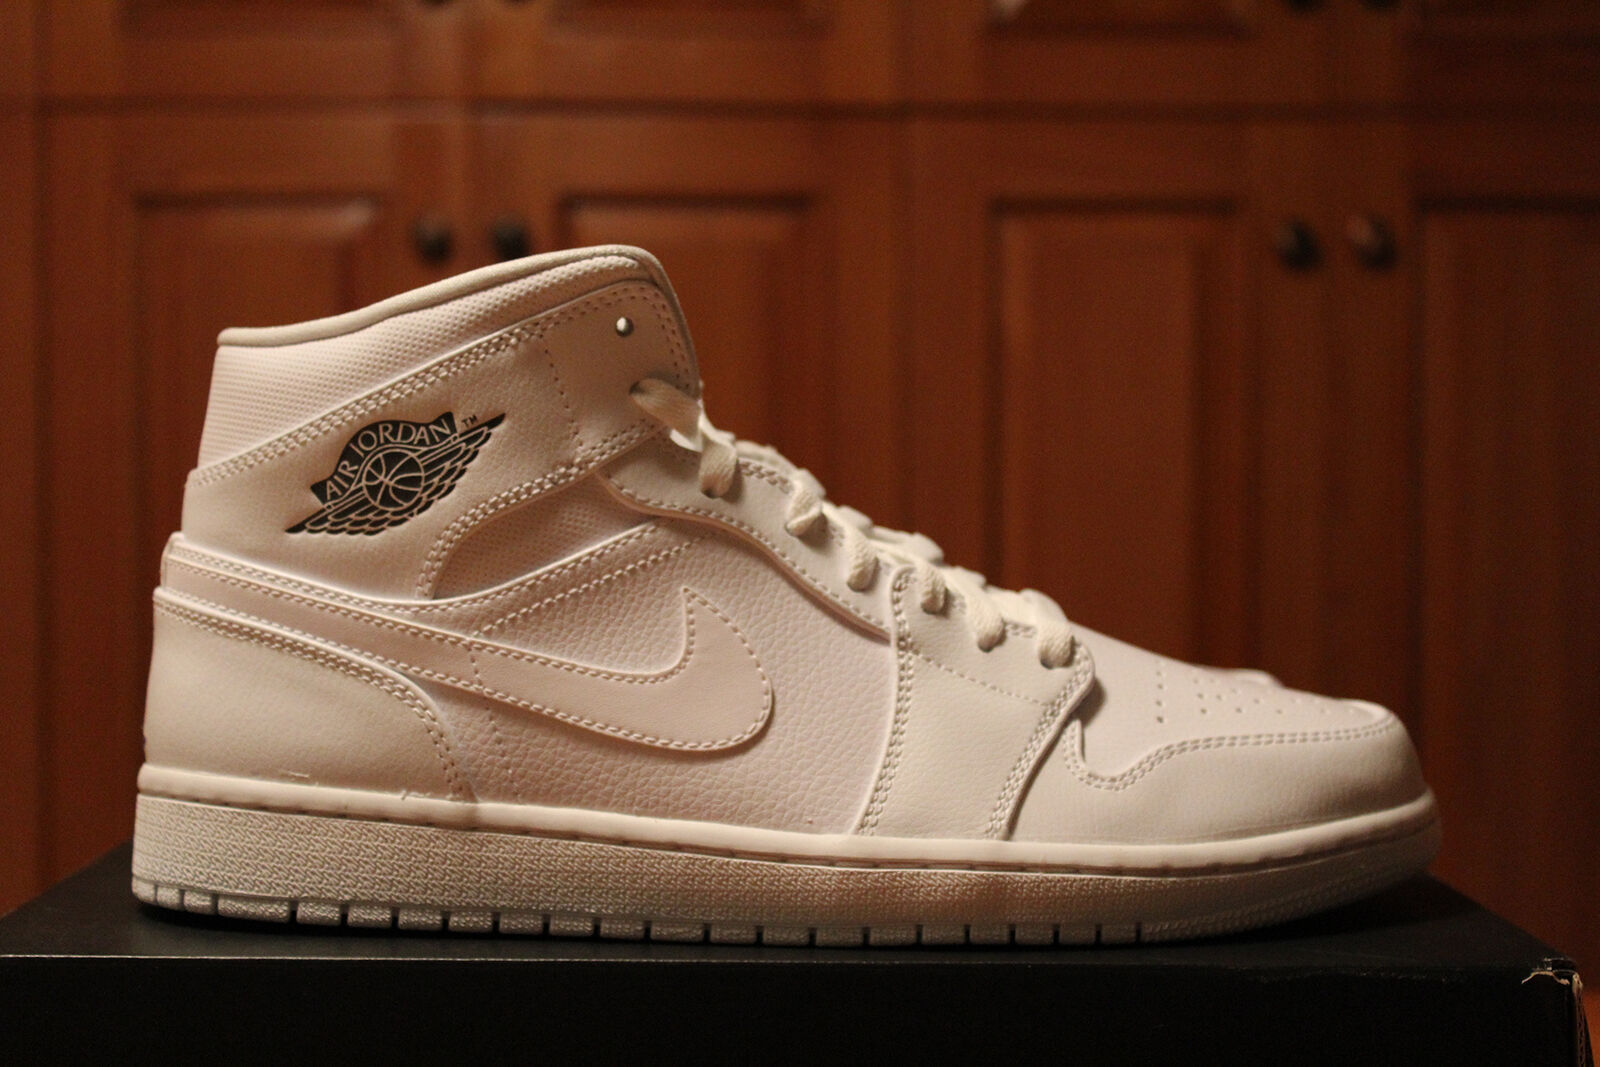 Air Jordan 1 Mid White/white Nike Flight Kith Basketball Shoes US shoe 12 Comfortable and good-looking